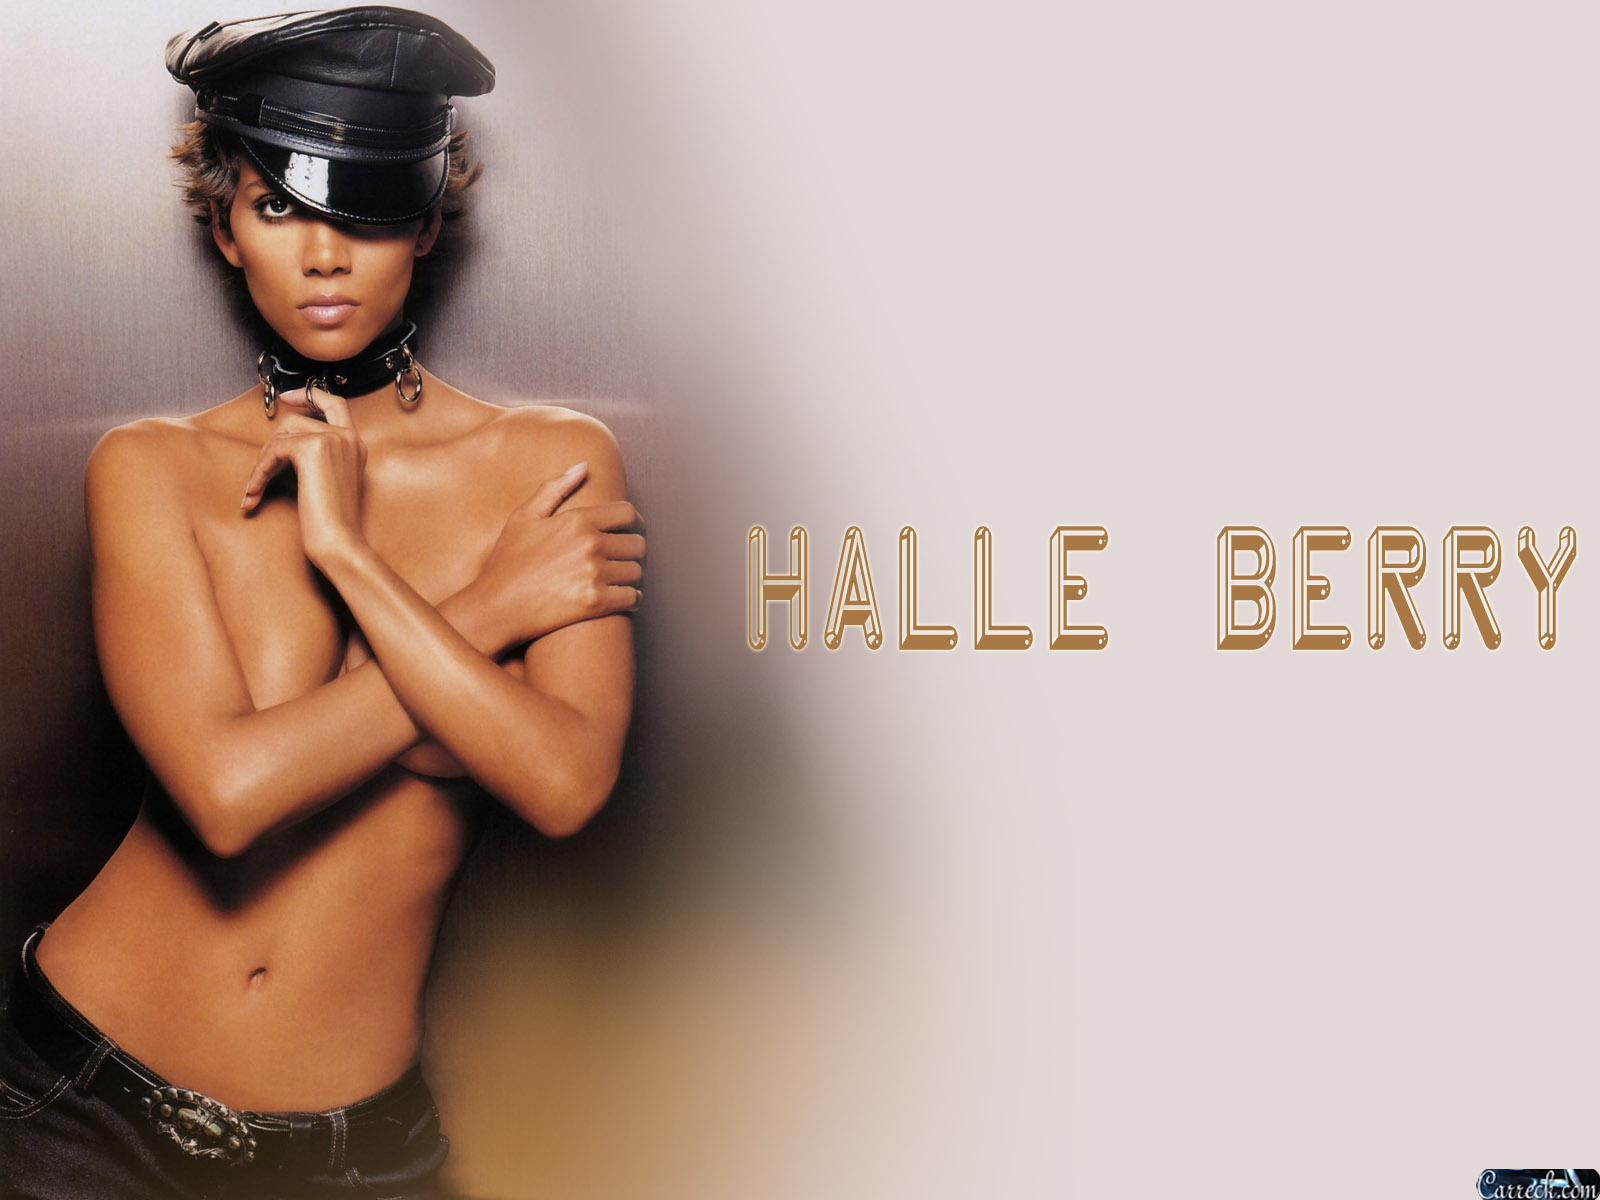 1600x1200 - Halle Berry Wallpapers 22